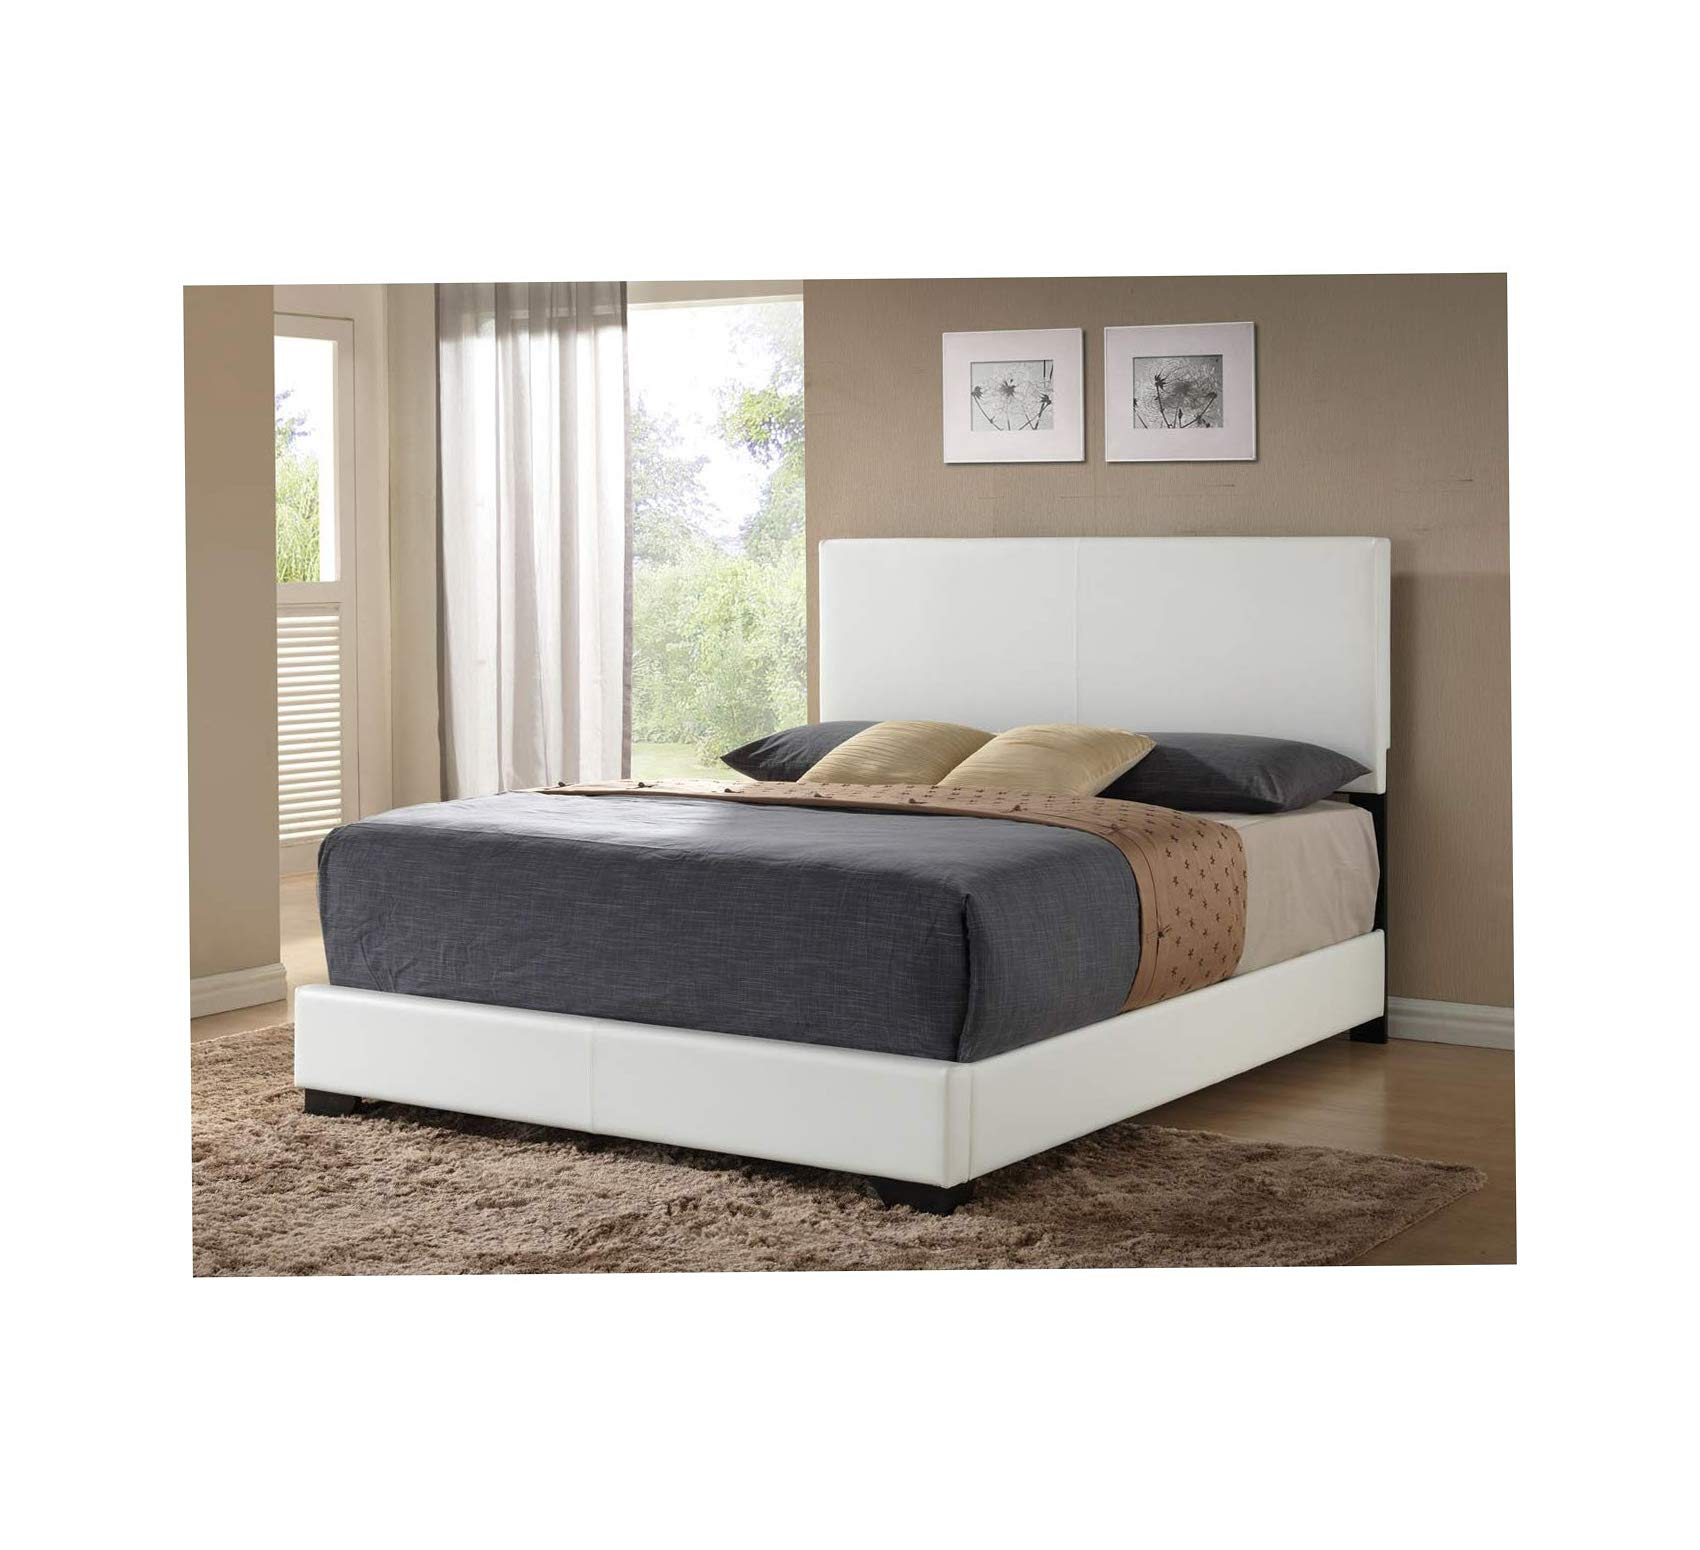 Wood & Style Bed with Footboard & Rail (Set of 2), Full, White Comfy Living Home Décor Furniture Heavy Duty by Wood & Style